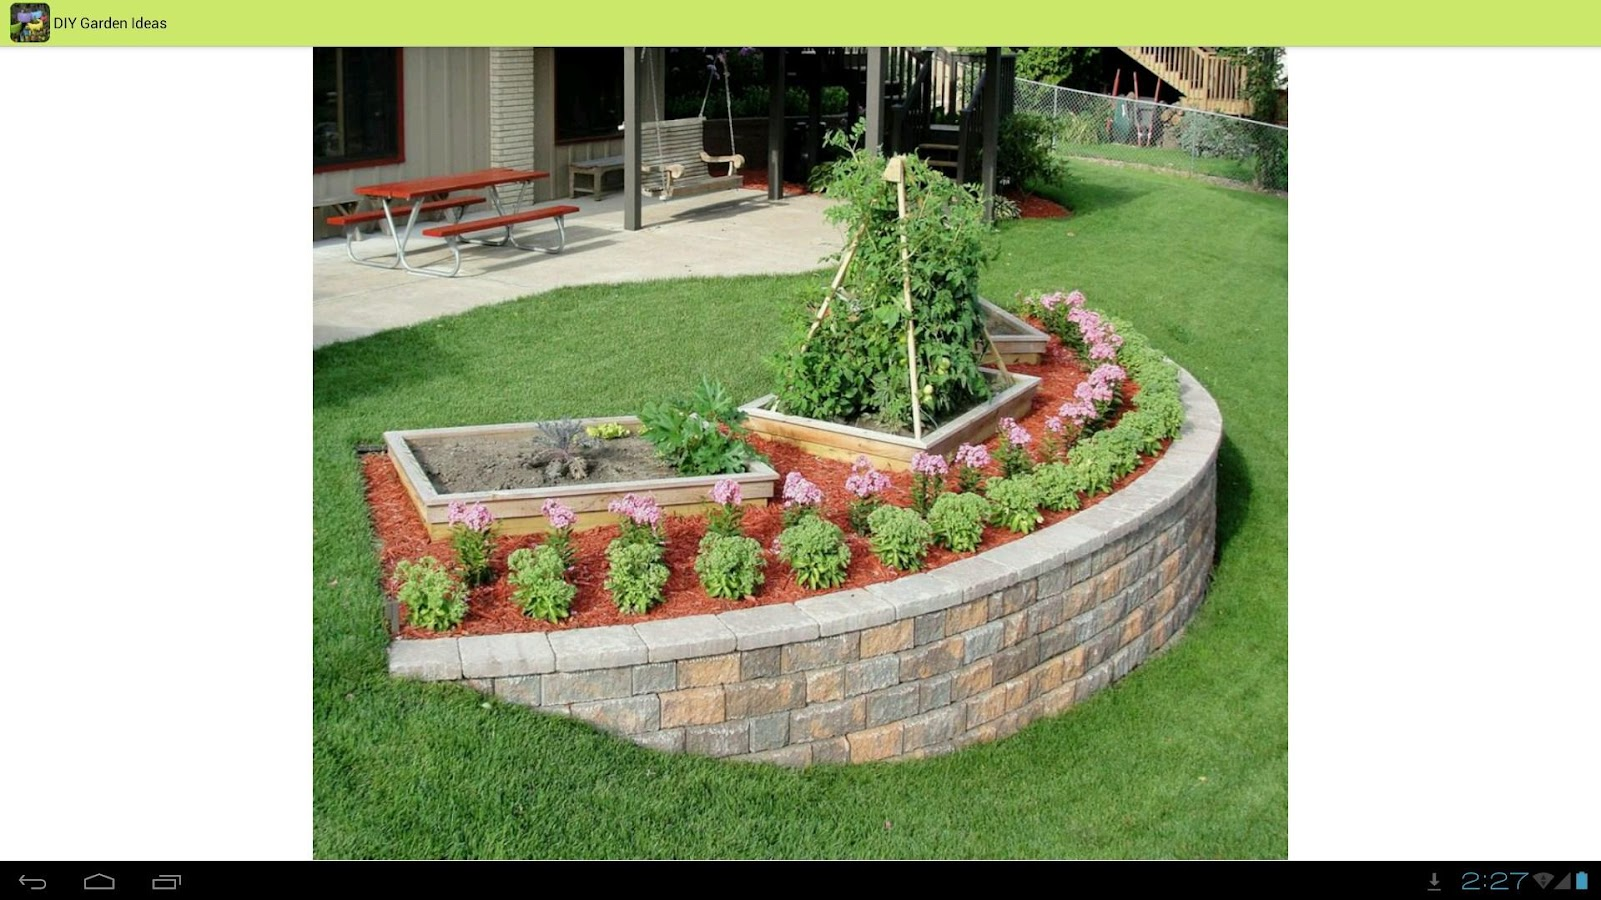 Diy garden ideas android apps on google play for Diy home design ideas landscape backyard